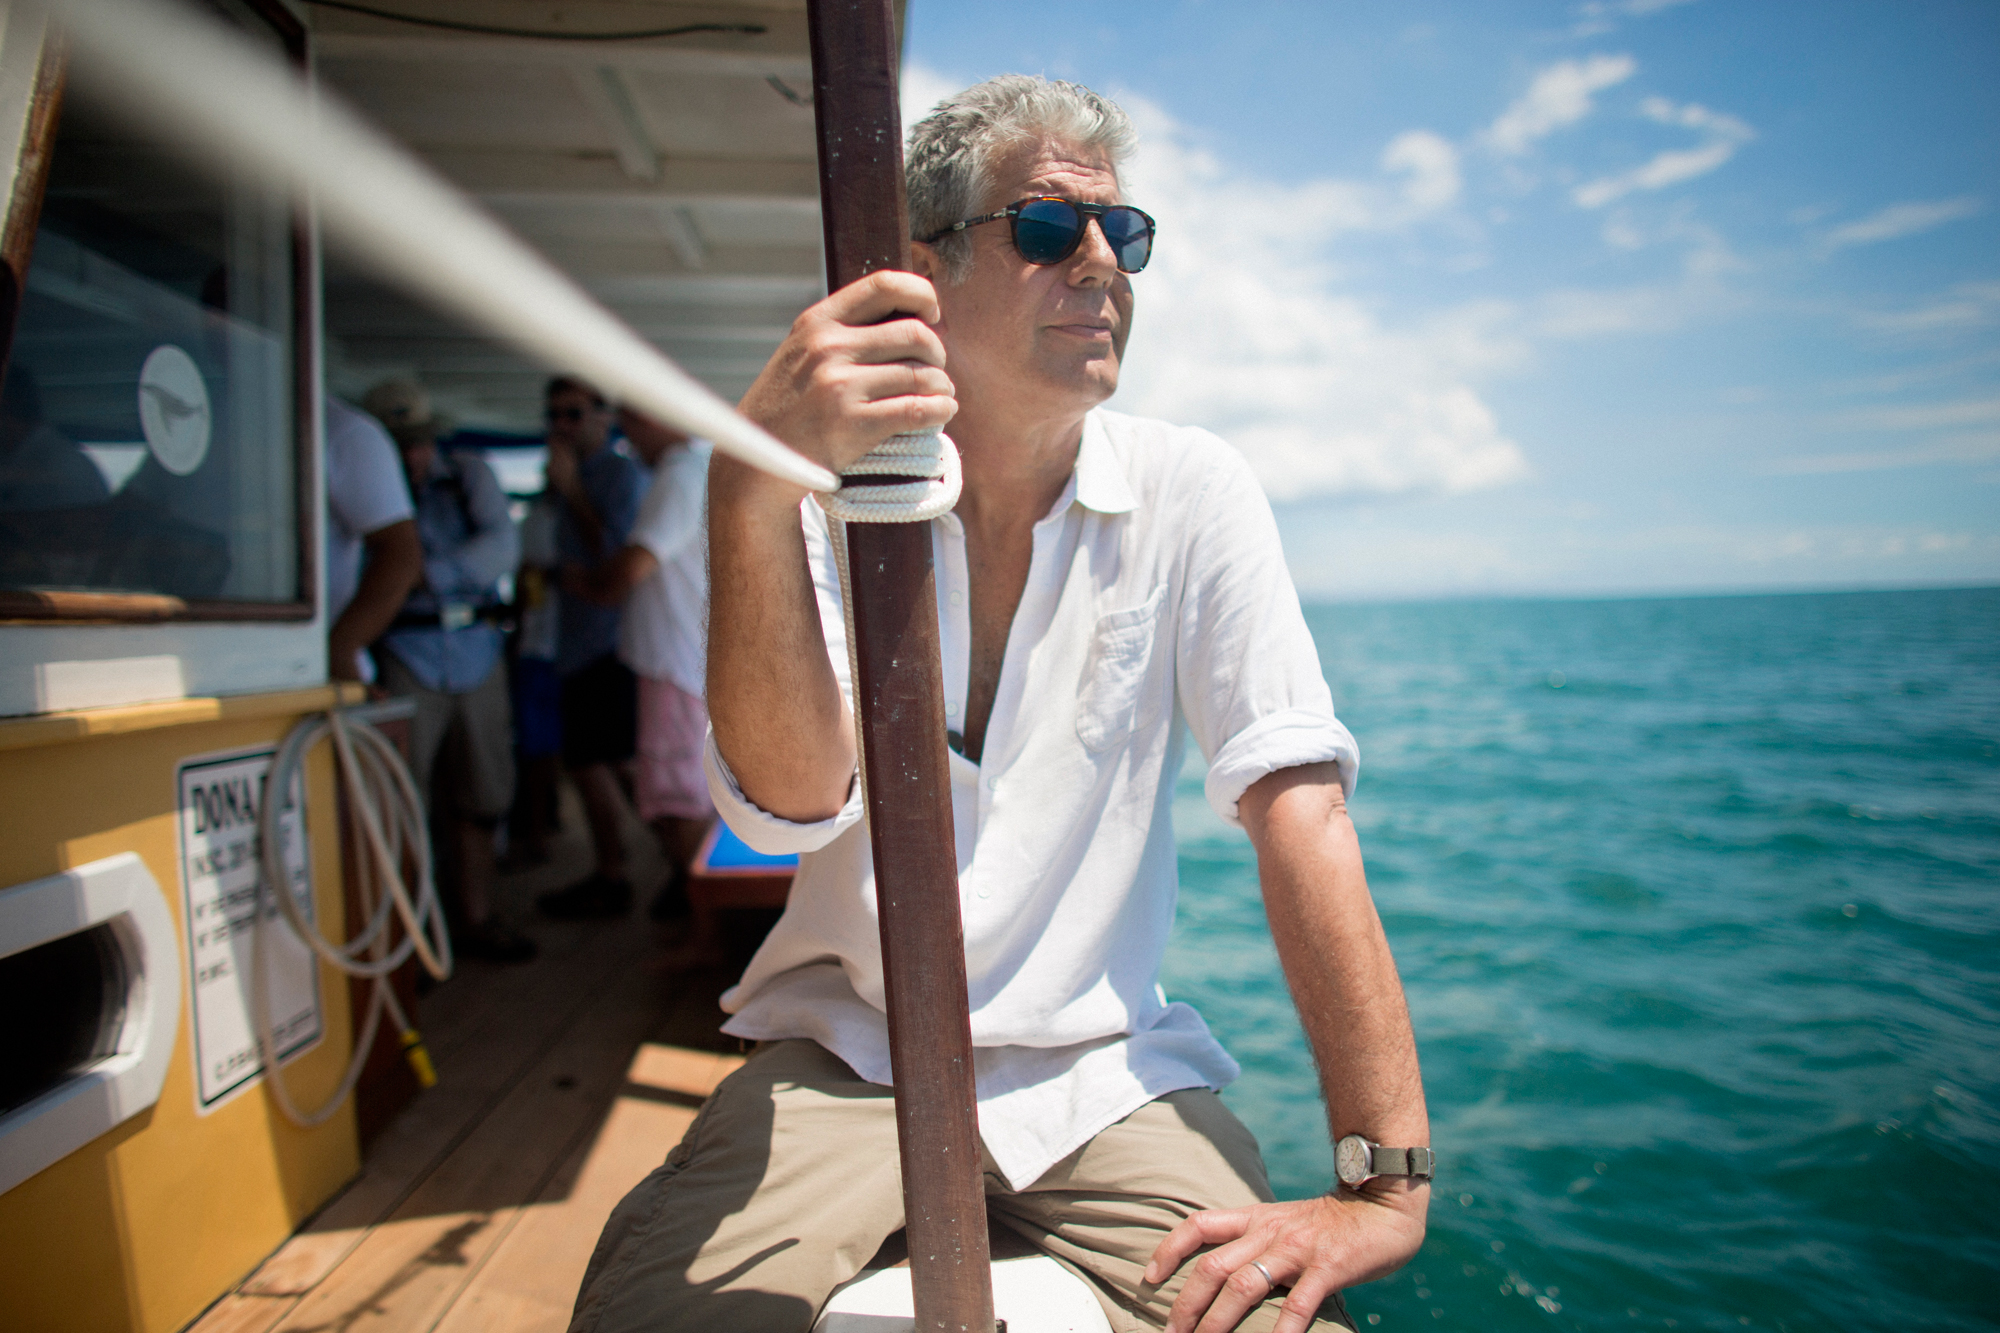 Anthony Bourdain on a boat in an episode of parts unknown